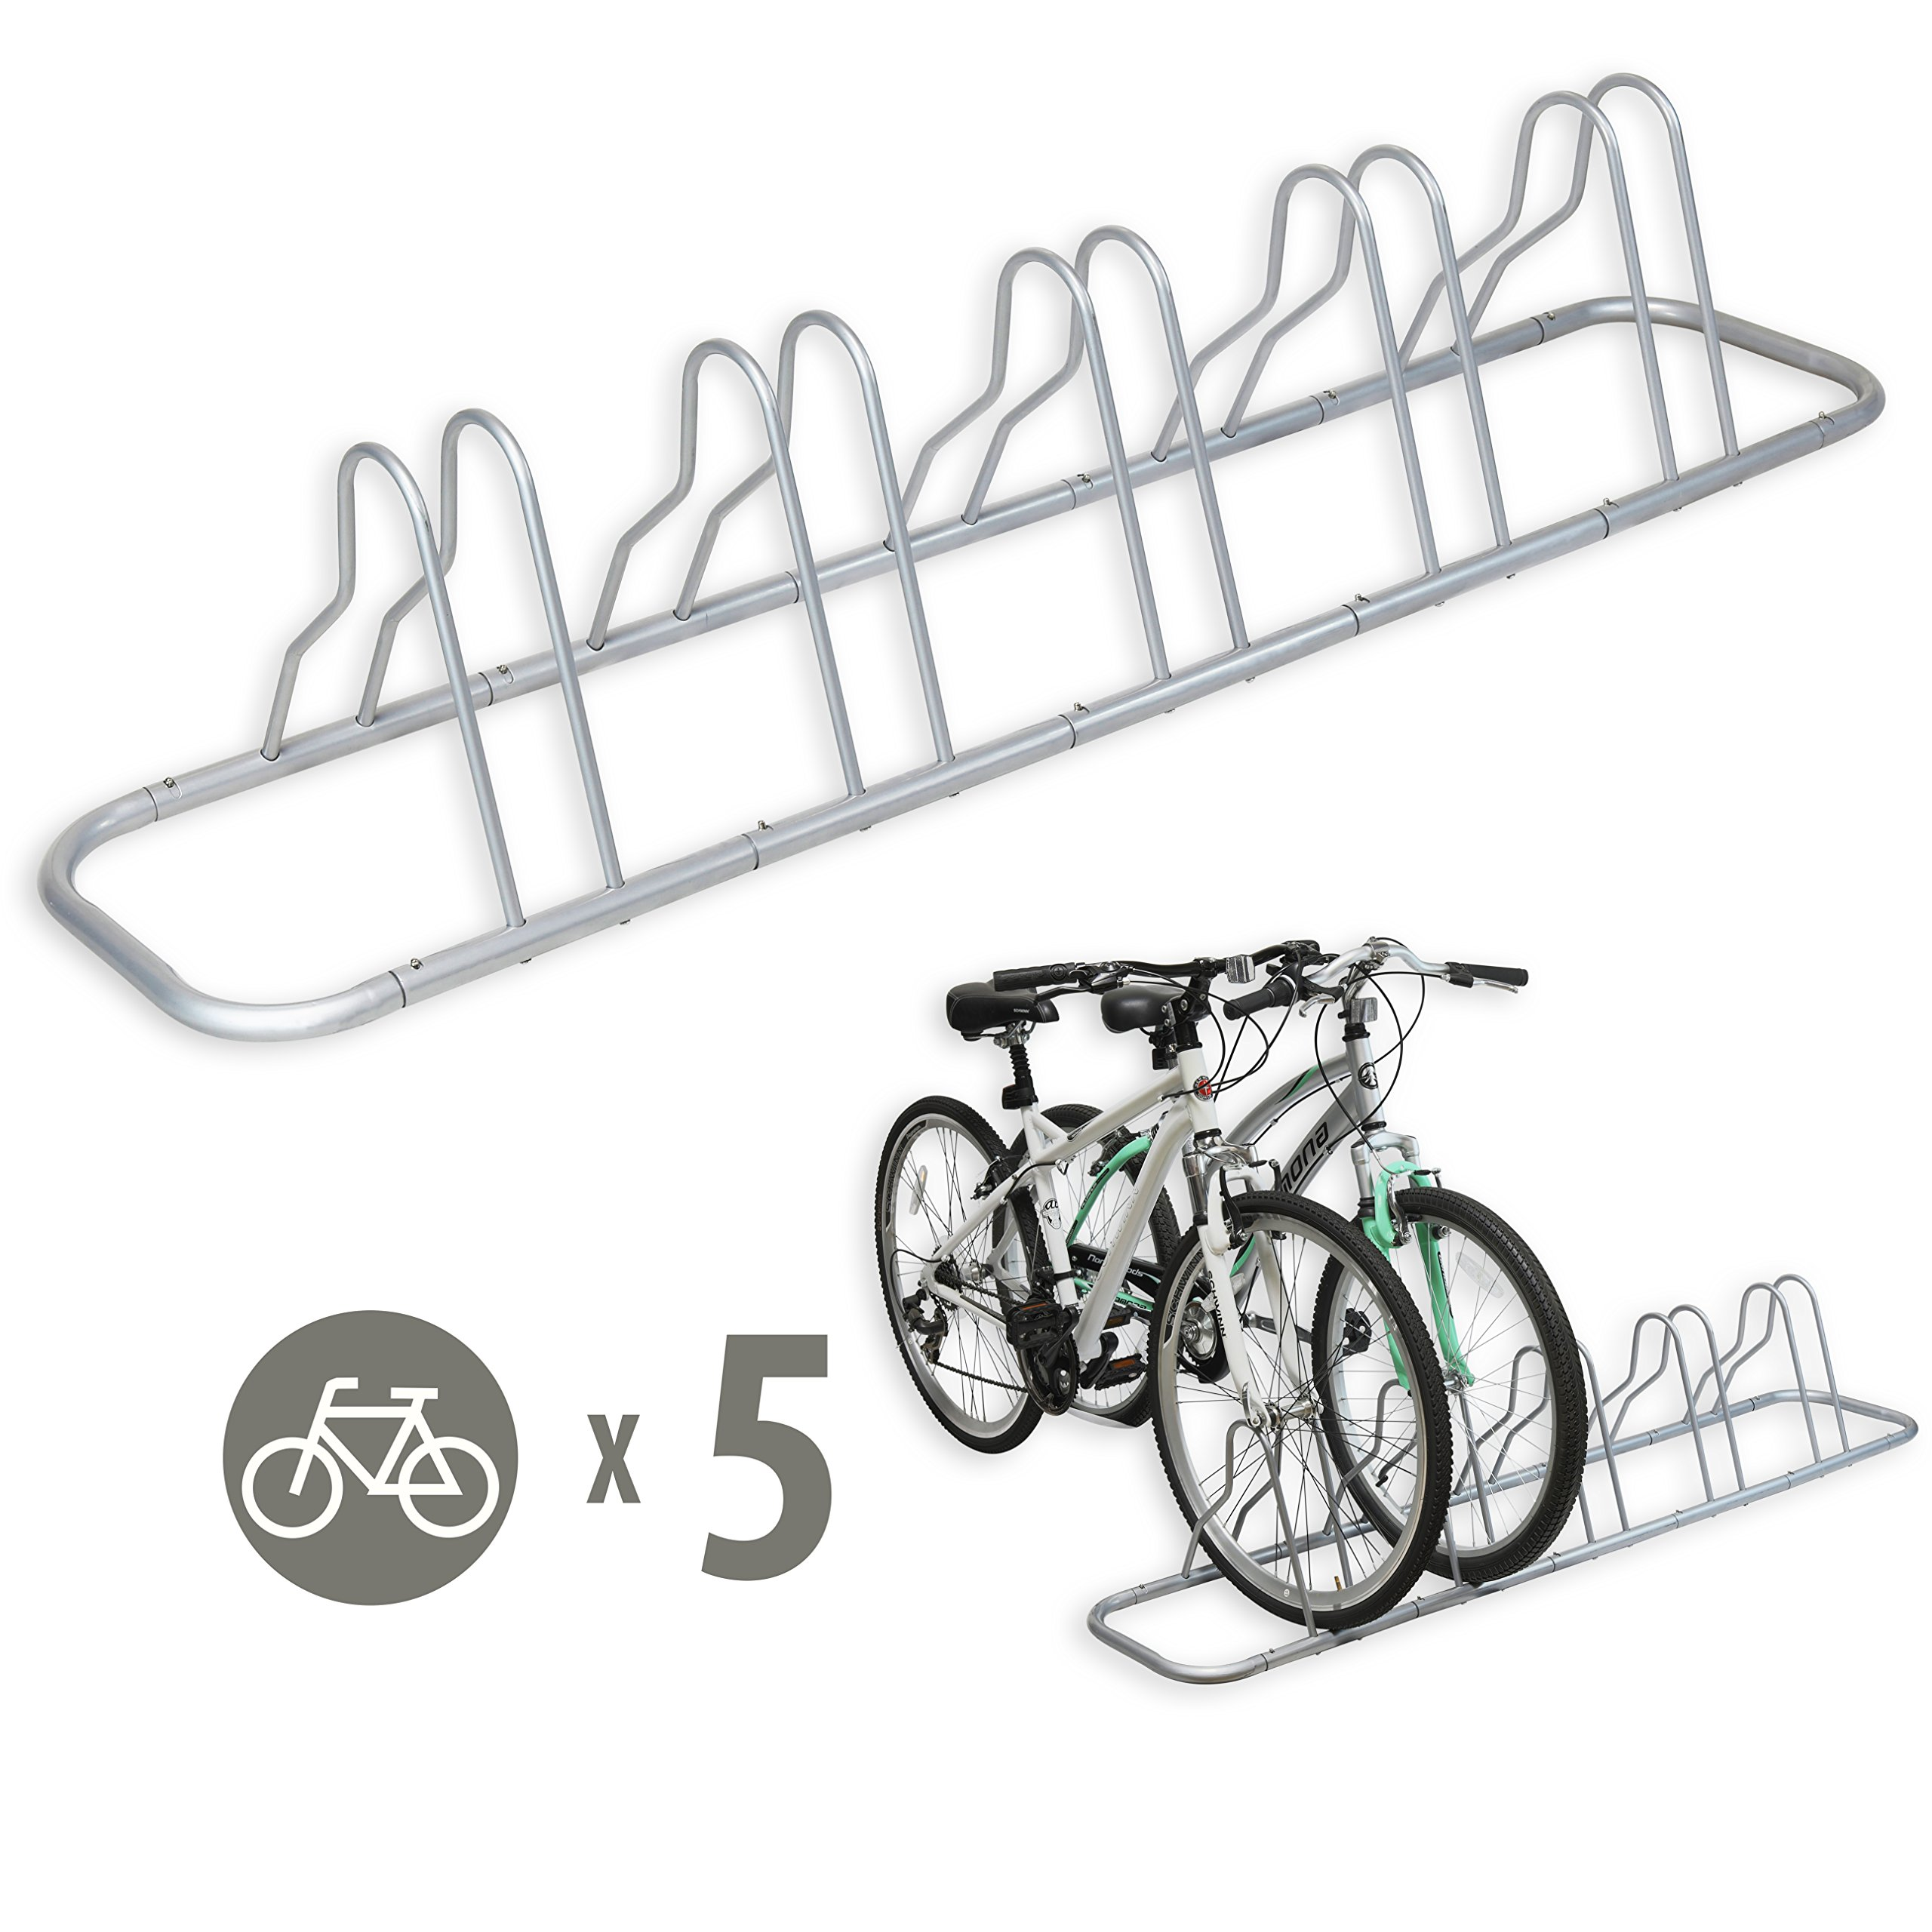 Simple Houseware 5 Bike Bicycle Floor Parking Adjustable Storage Stand, Silver by Simple Houseware